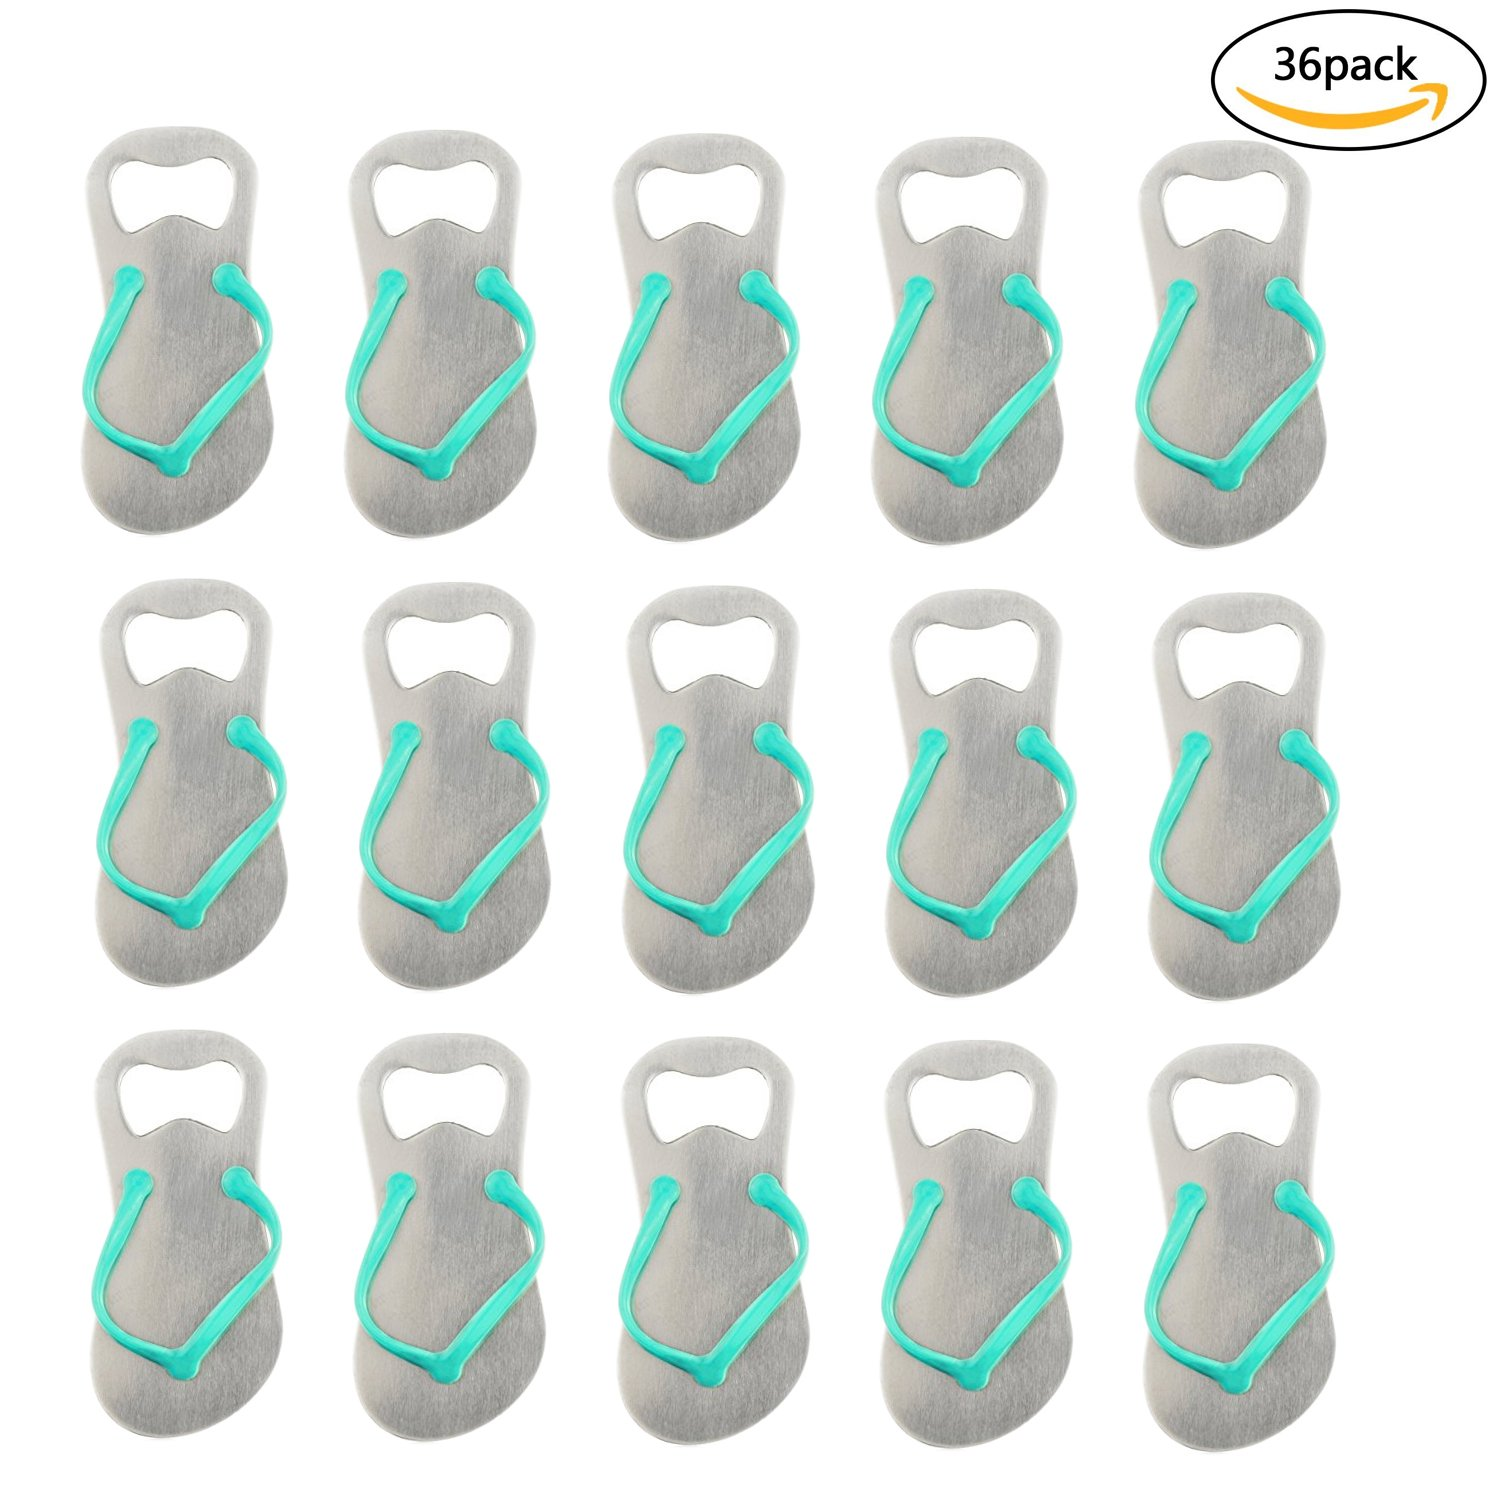 Flip-flop Bottle Opener Stainless Steel 36Pcs Wedding Souvenir w ...